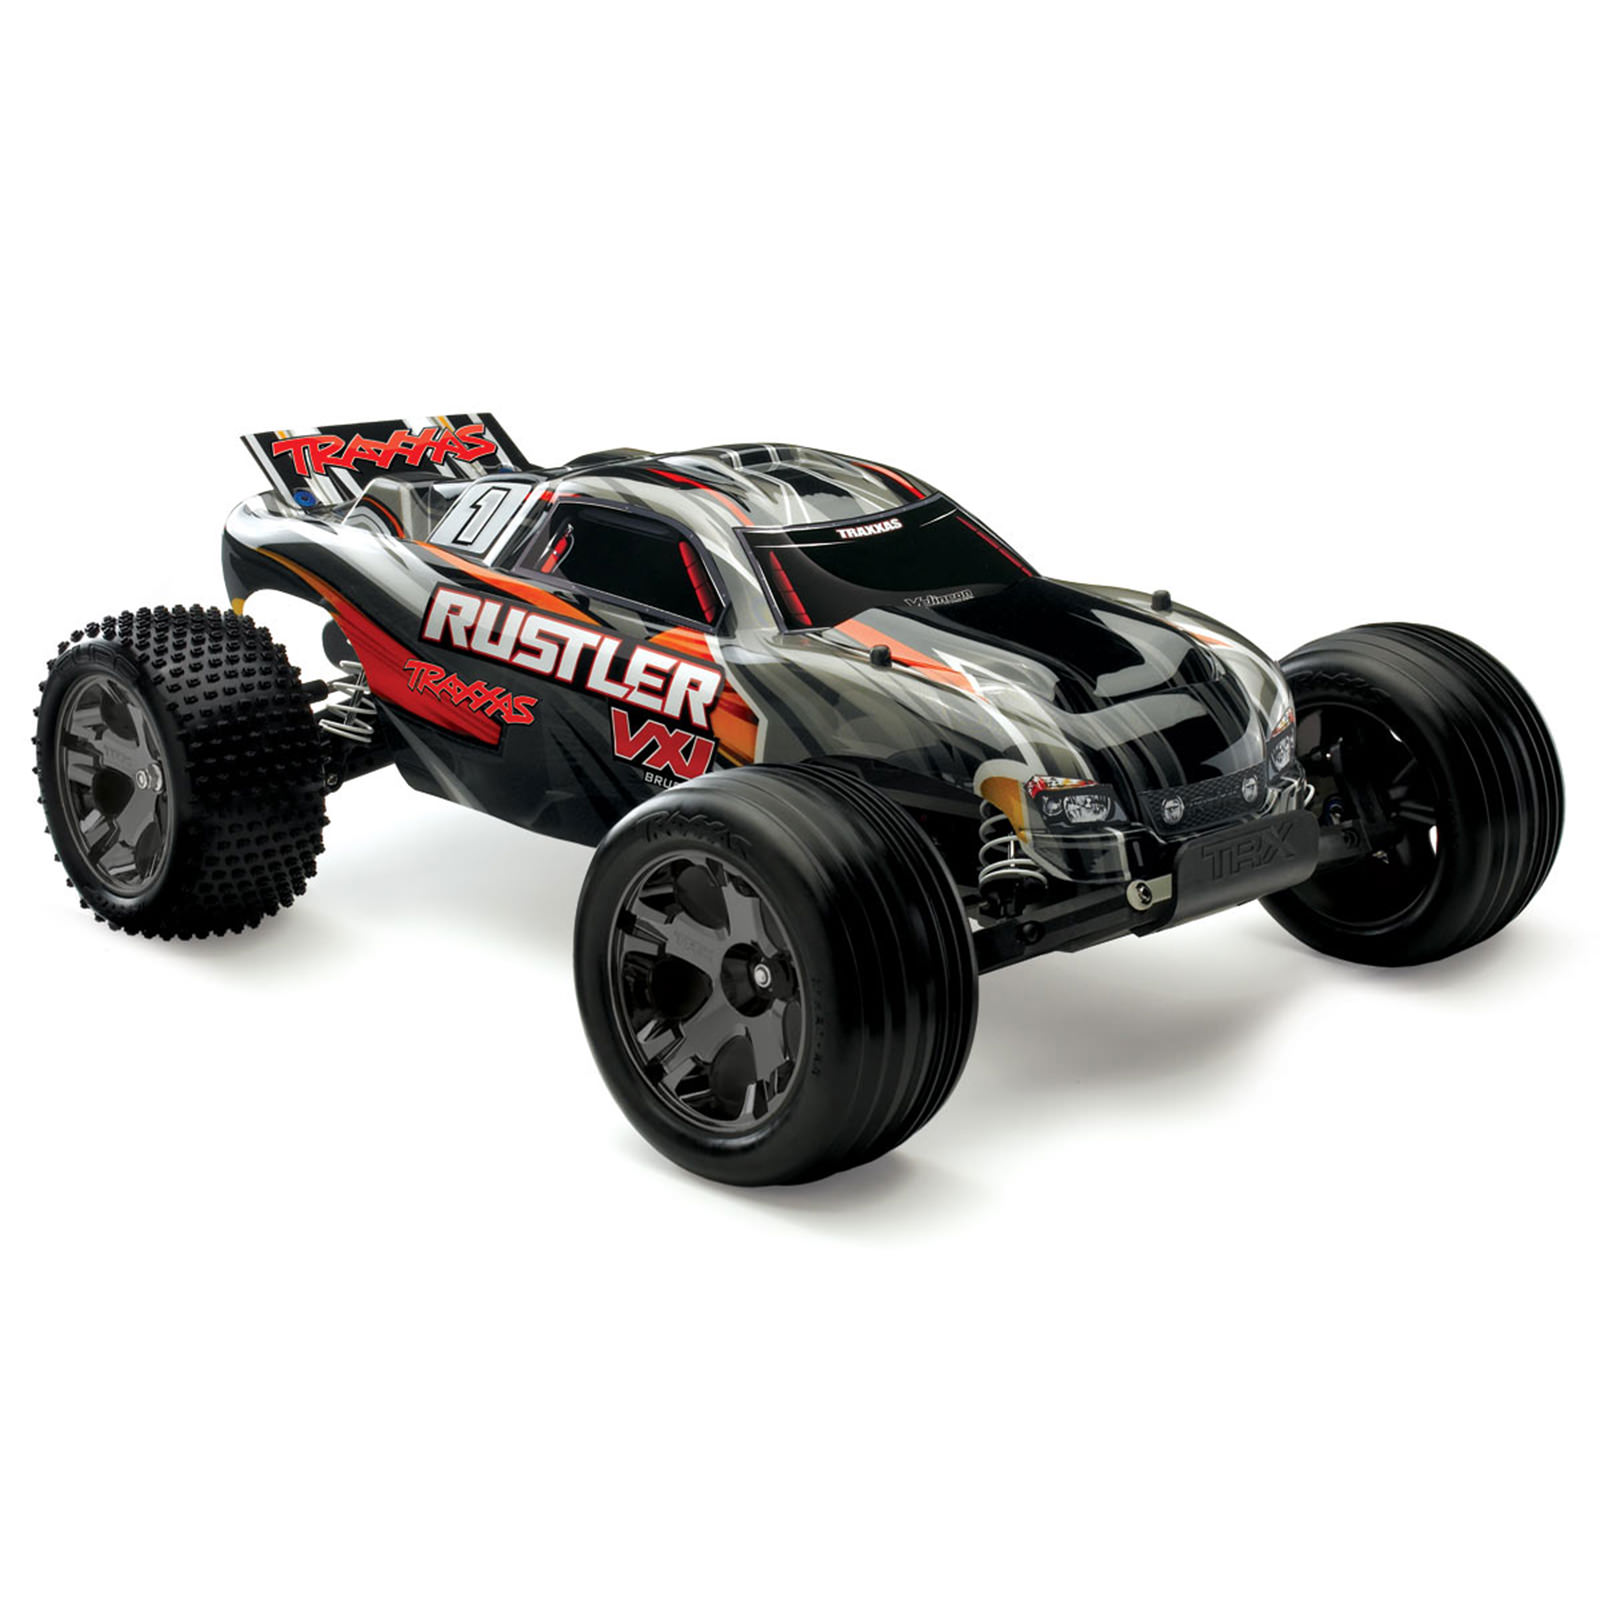 Traxxas 3707 Rustler Vxl Black Rc Truck At Hobby Warehouse